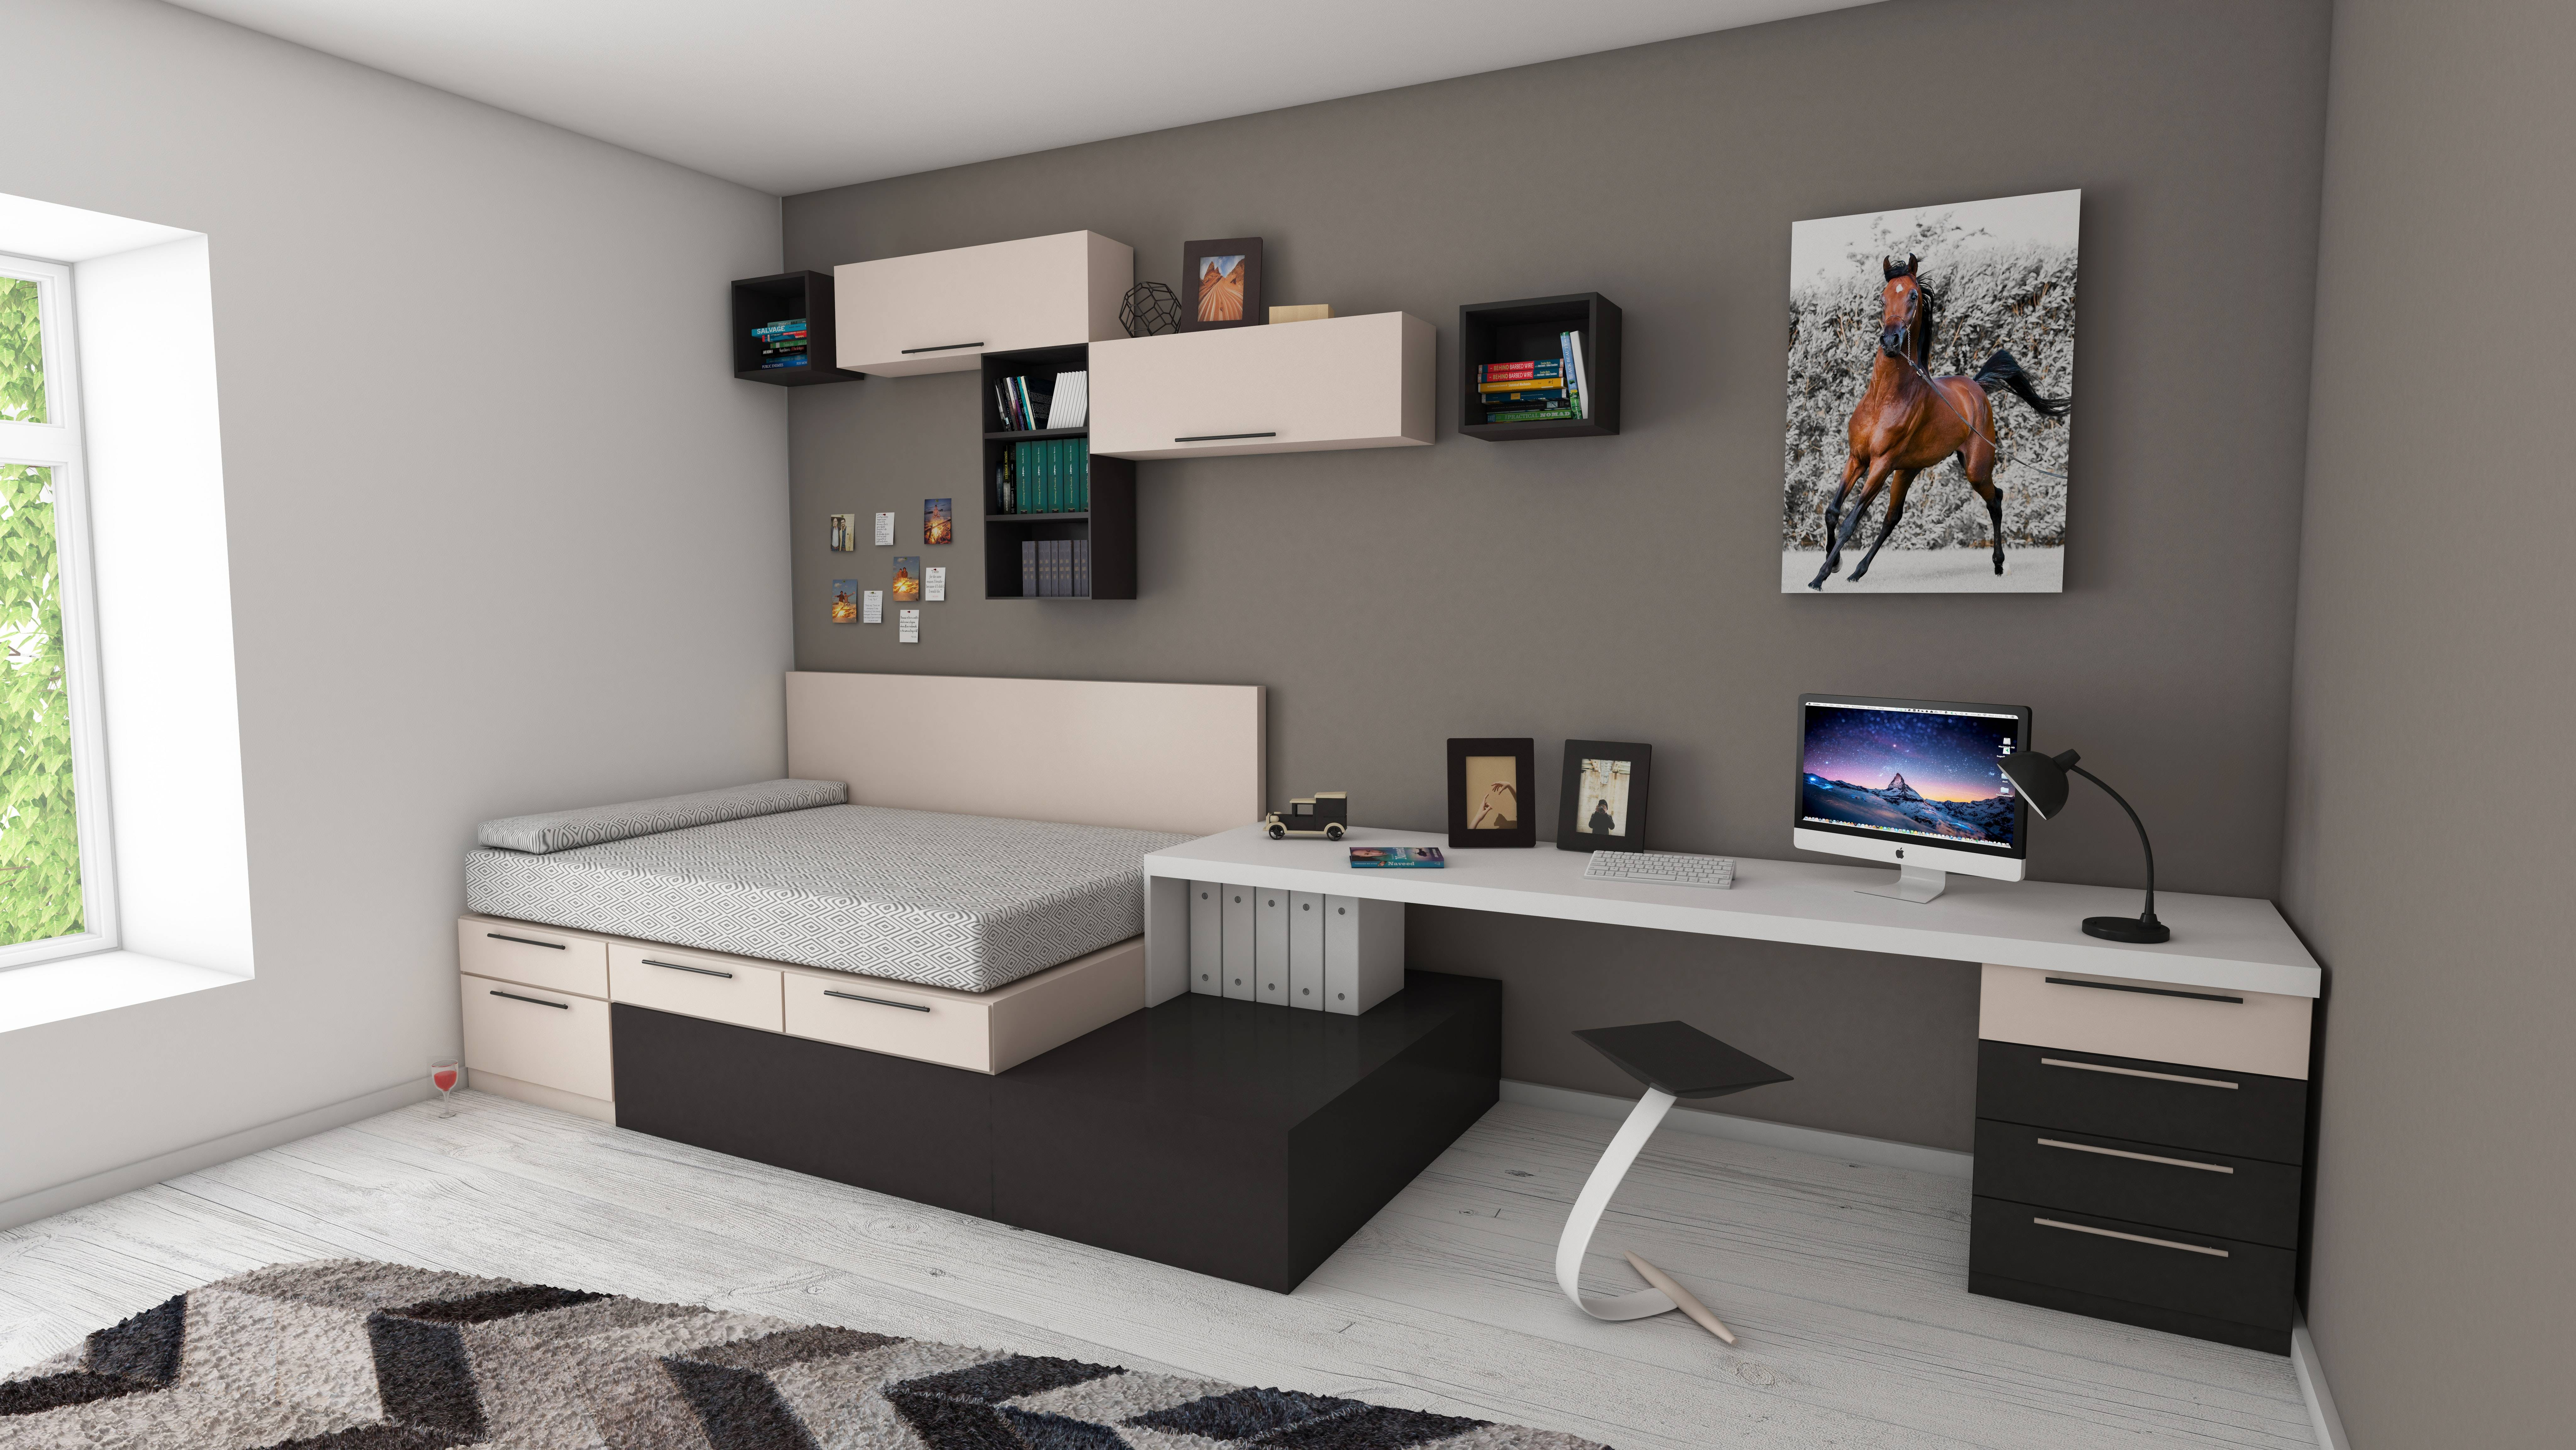 Bedroom with horse painting